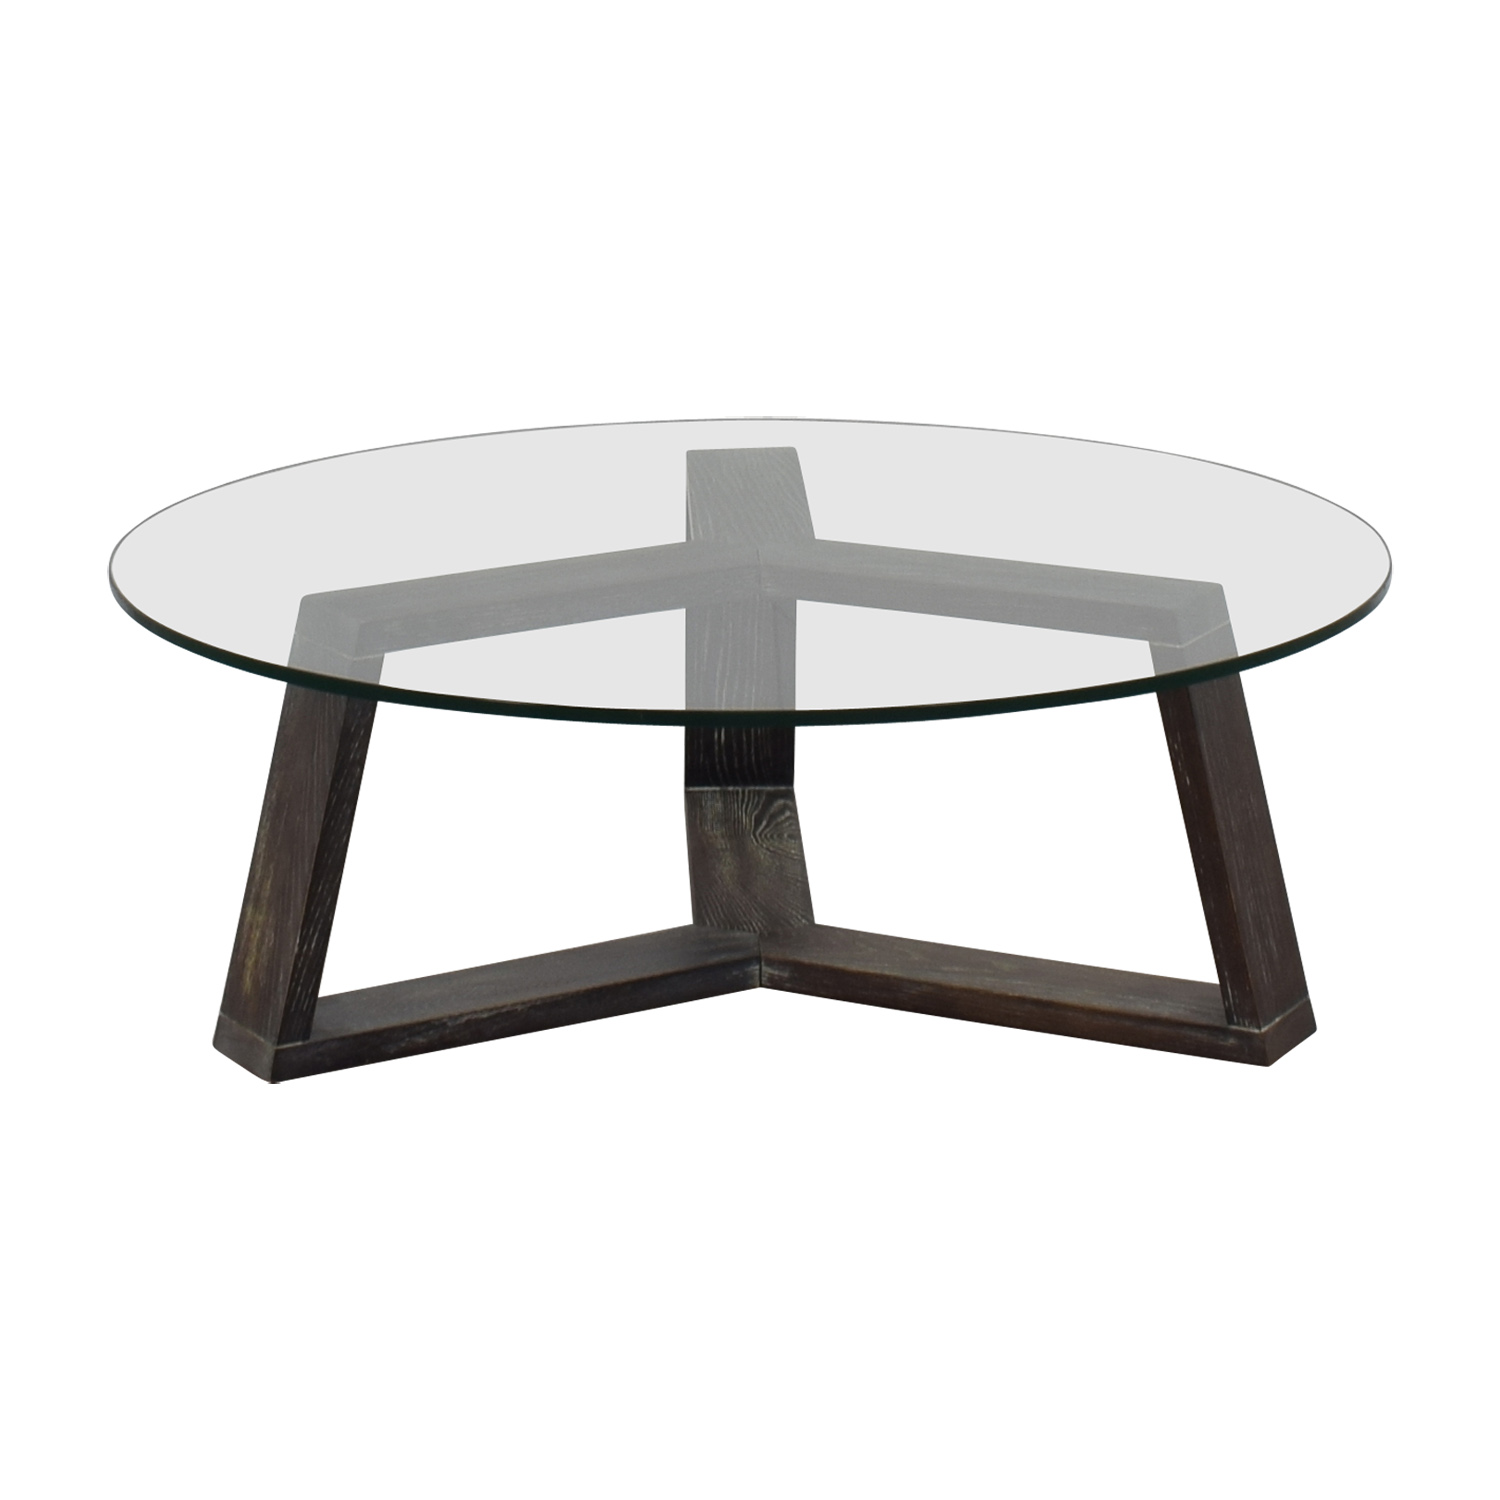 CB2 CB2 Round Glass And Wood Coffee Table / Tables